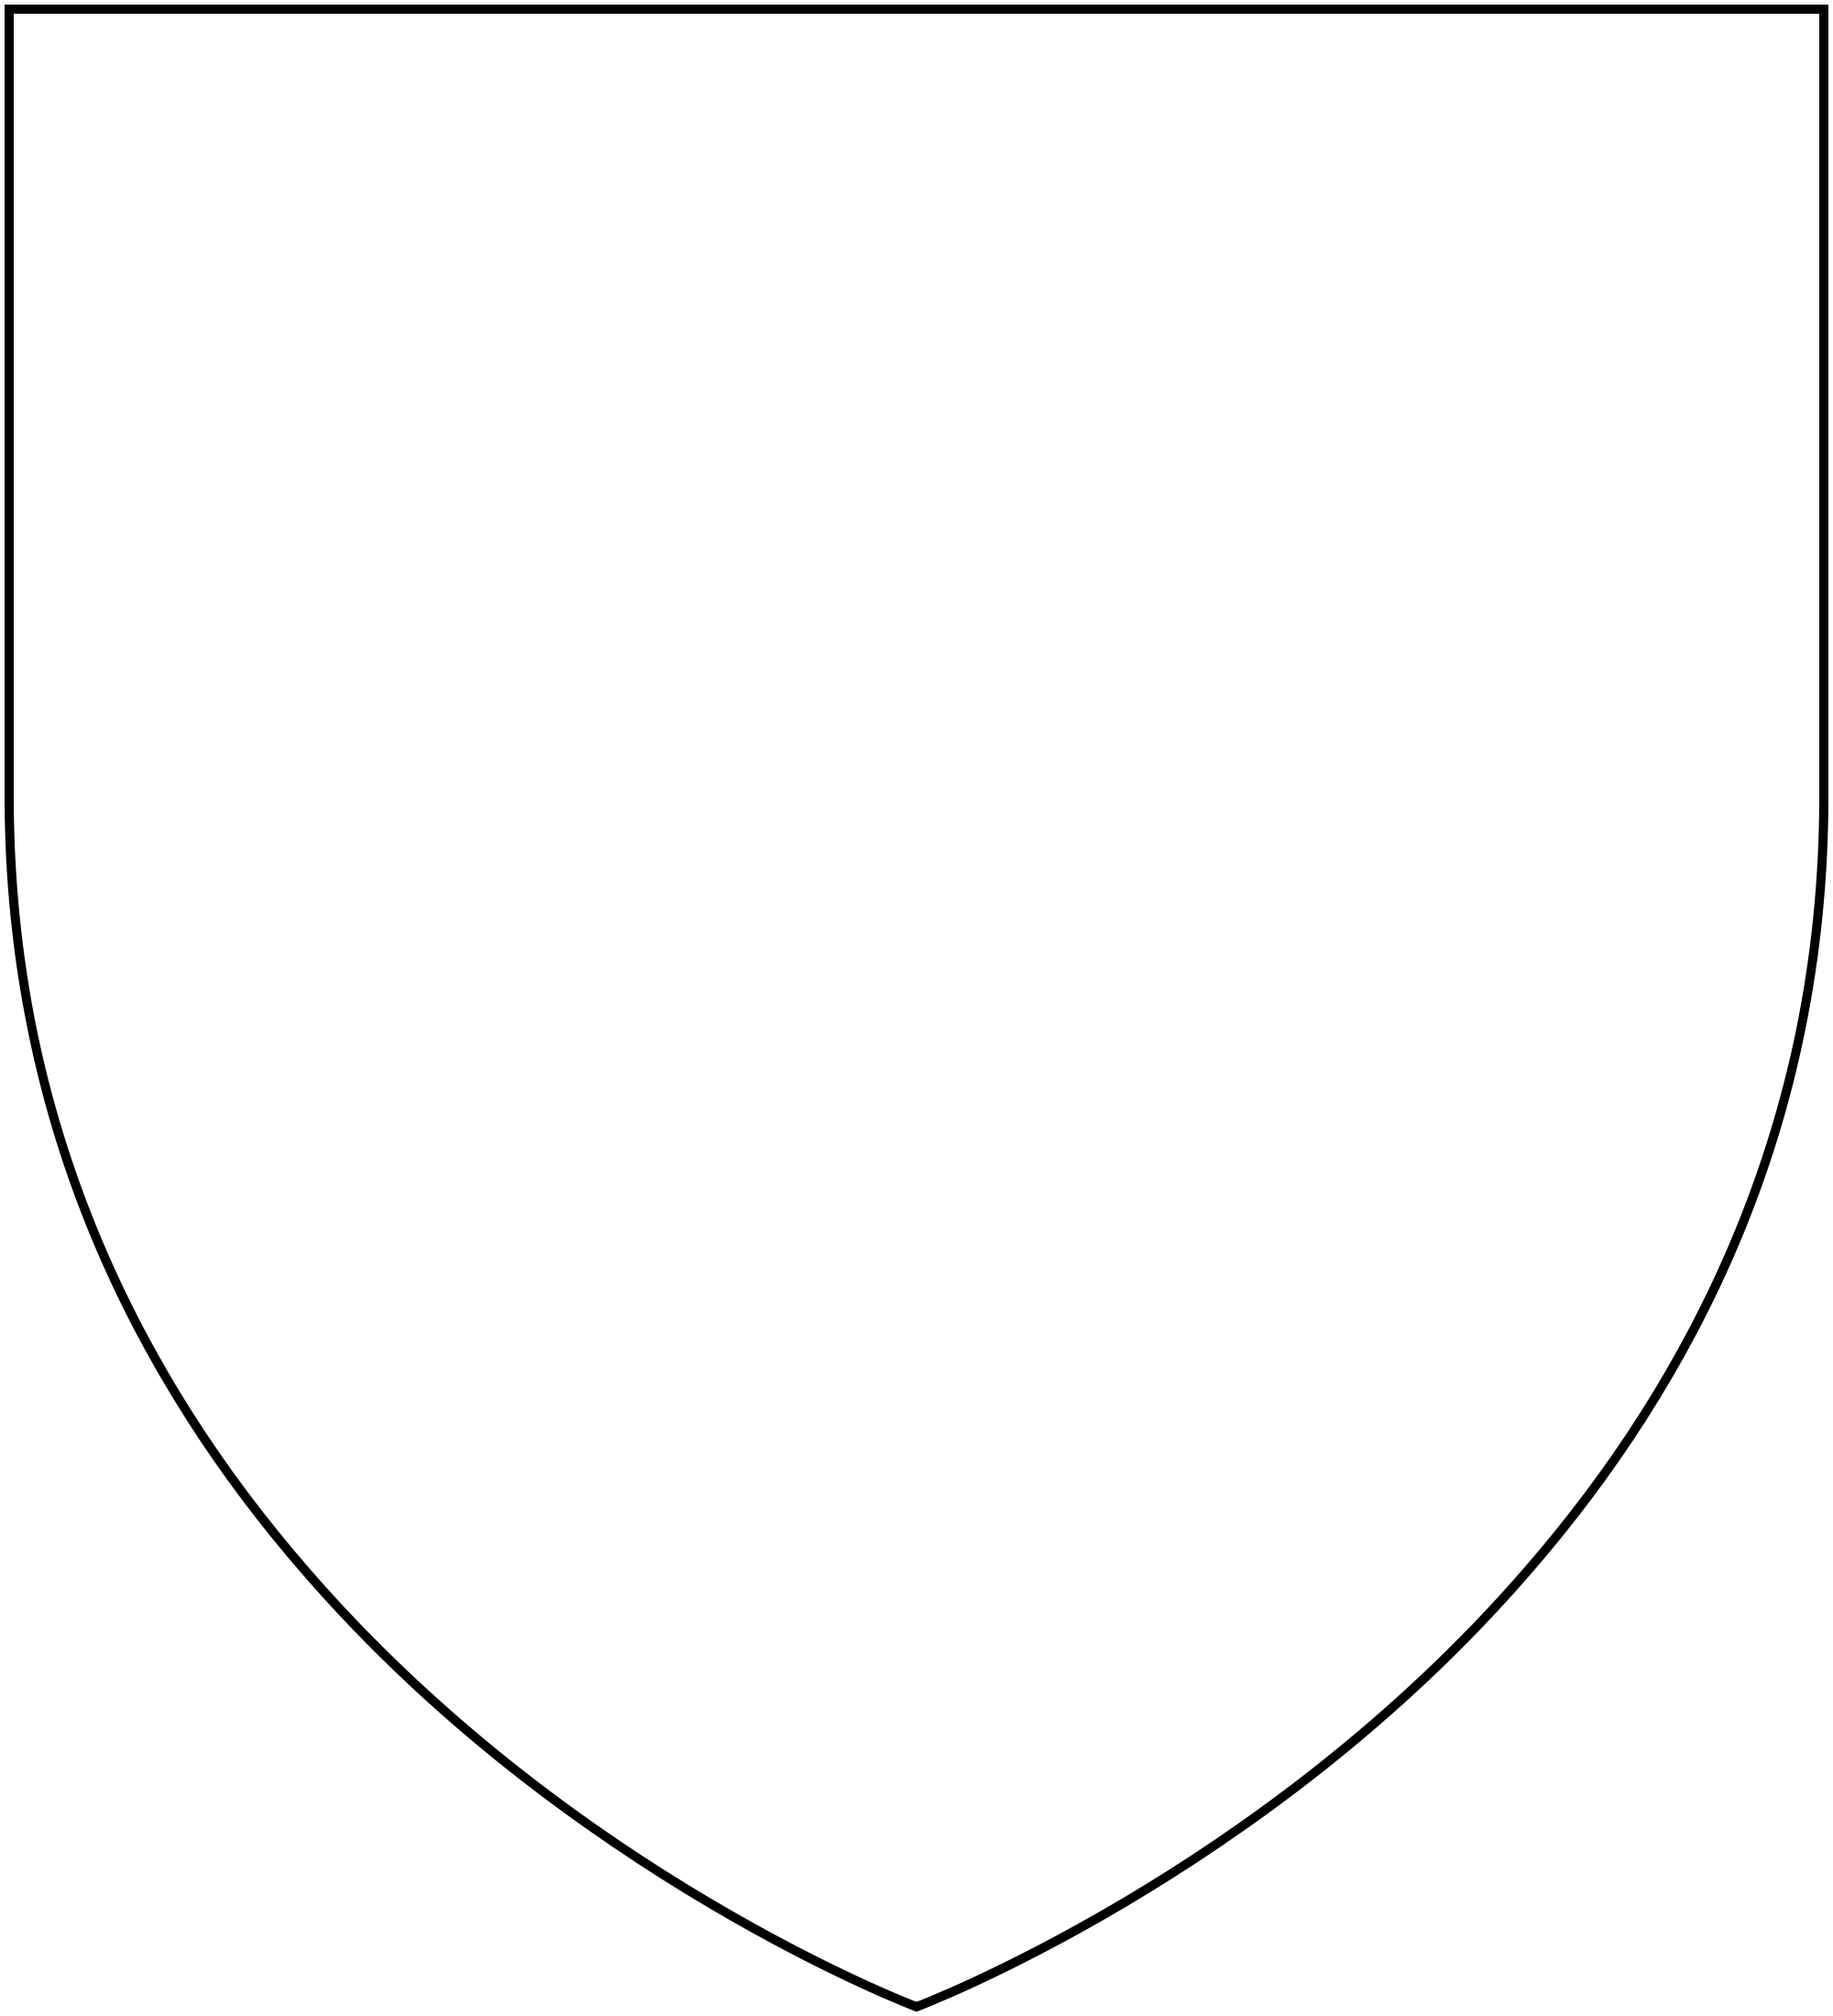 File heraldic shape x. Clipart shield plain